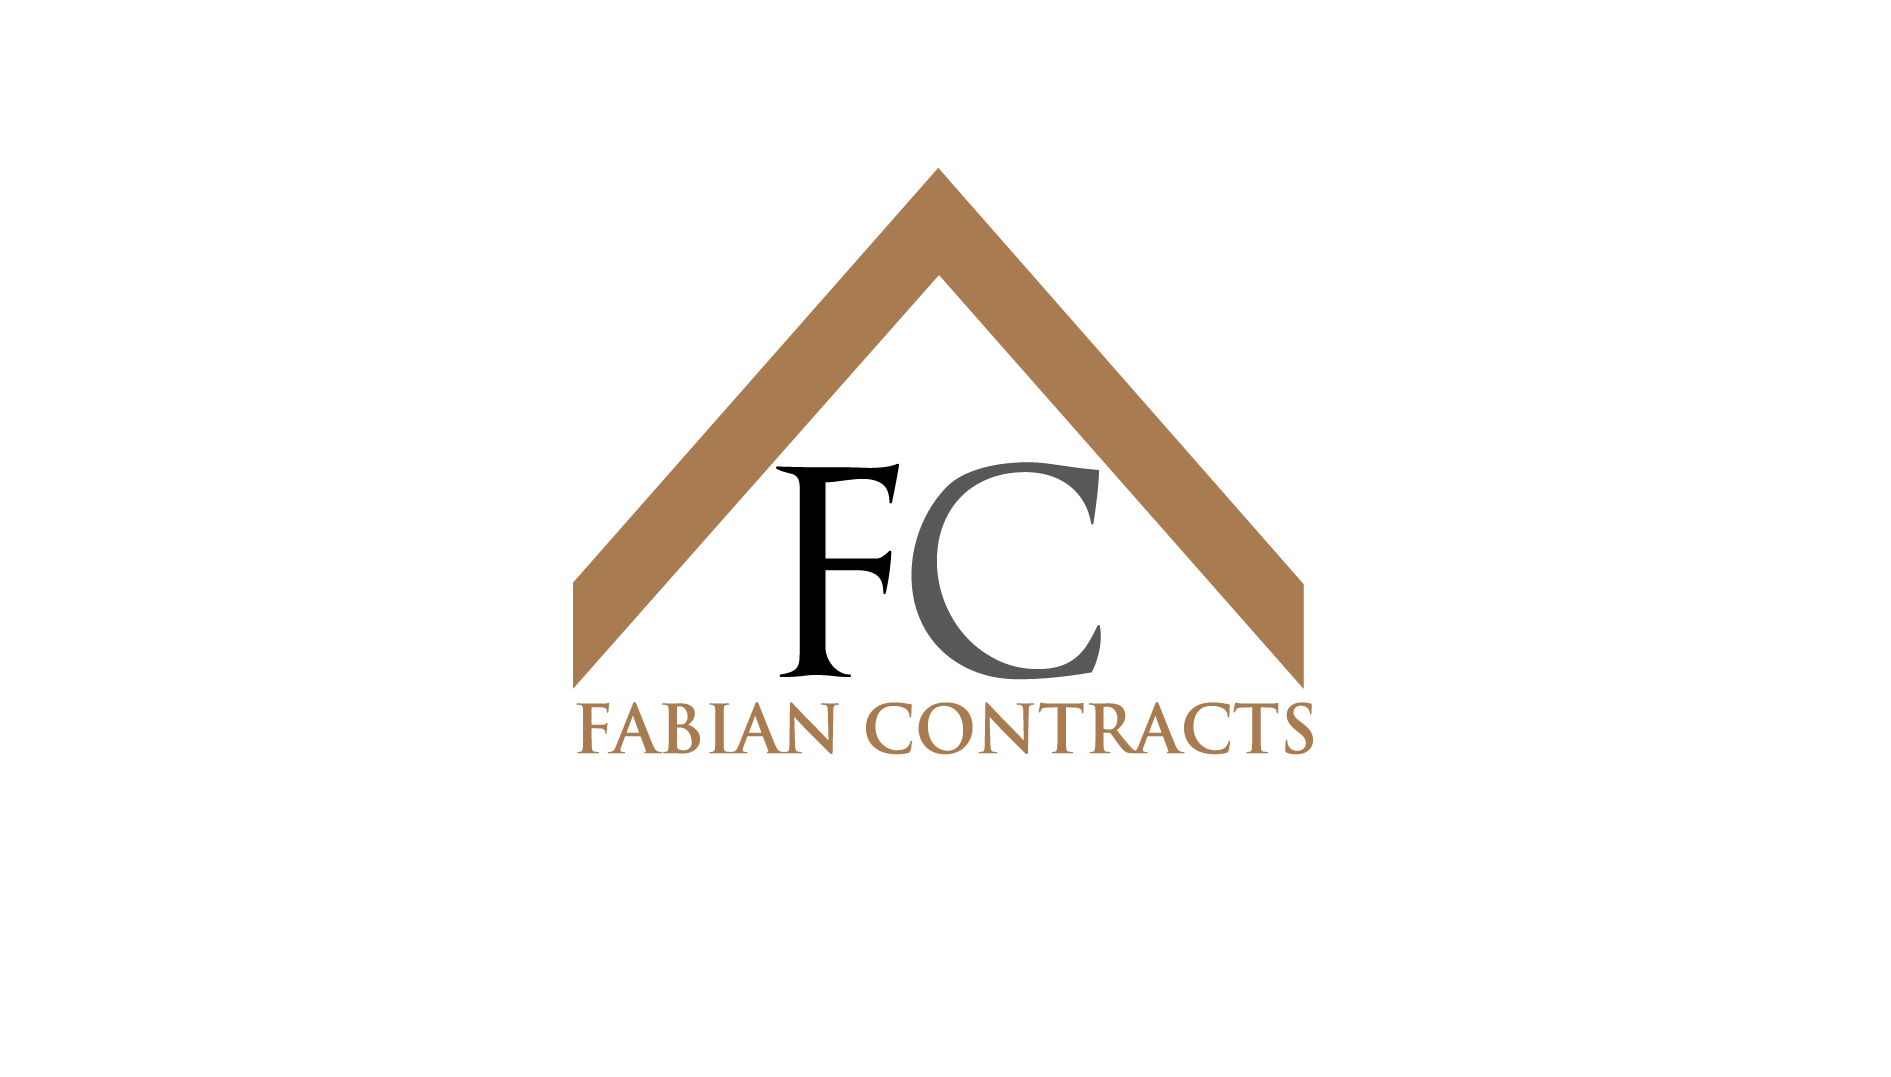 Welcome to FABIAN CONTRACTS